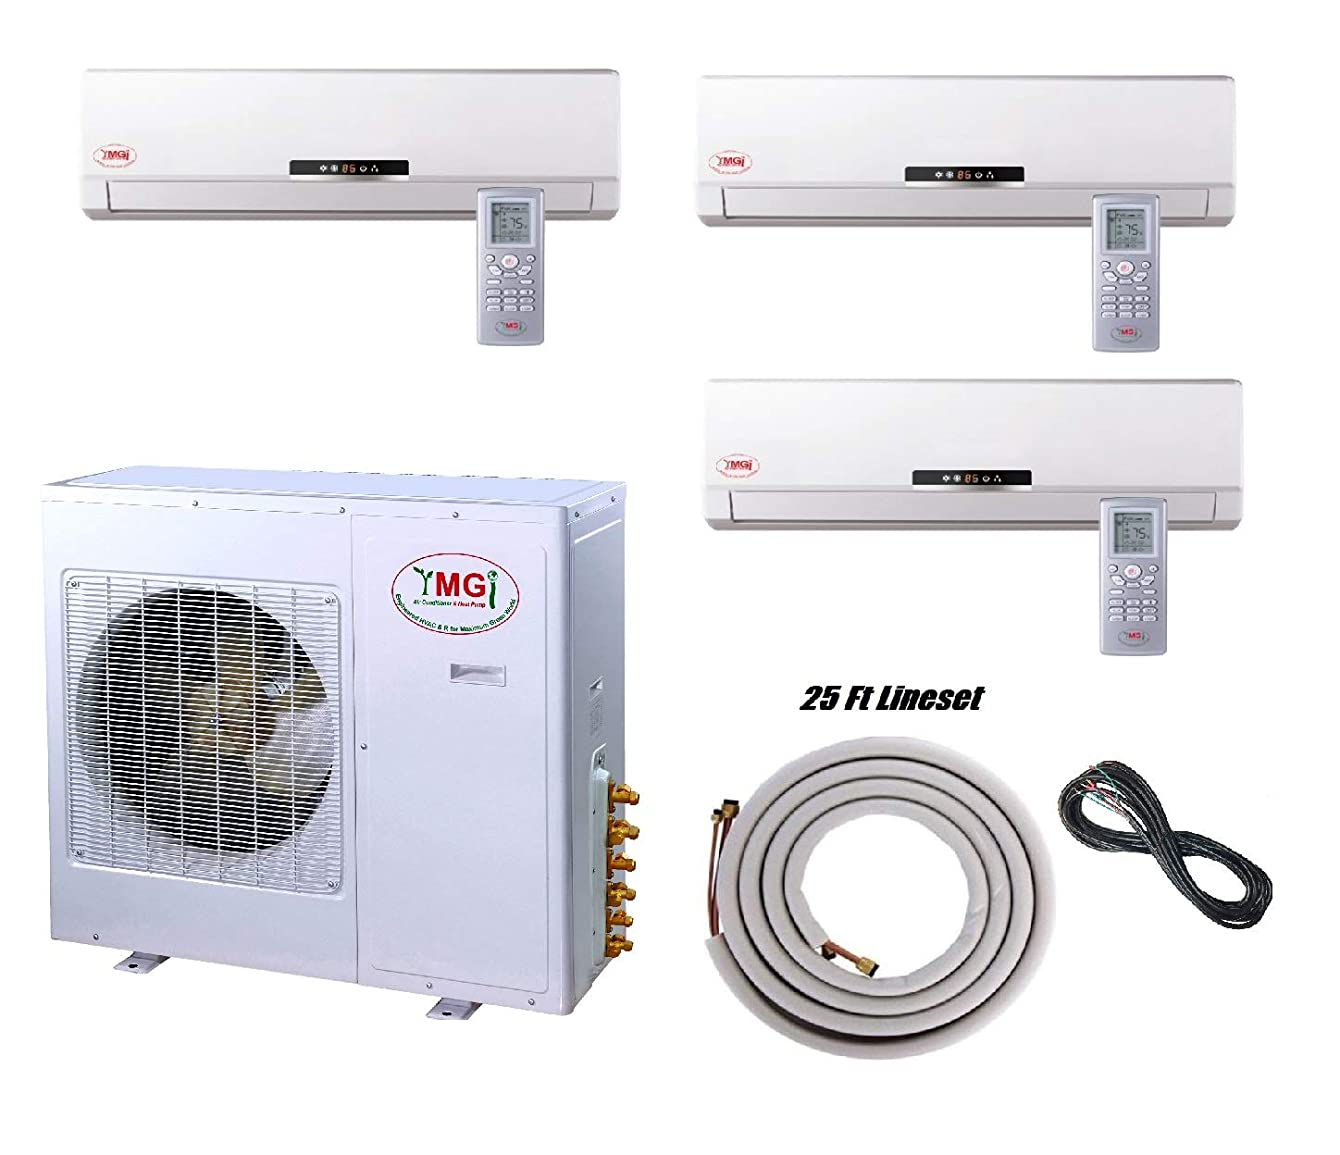 YMGI Tri Zone 3 Zone Ductless Mini Split Air Conditioner - 27000 BTU (9k+9k+9K) 2.25 Ton 21 SEER with Wall Mount Indoor Unit Lineset and Wire Included